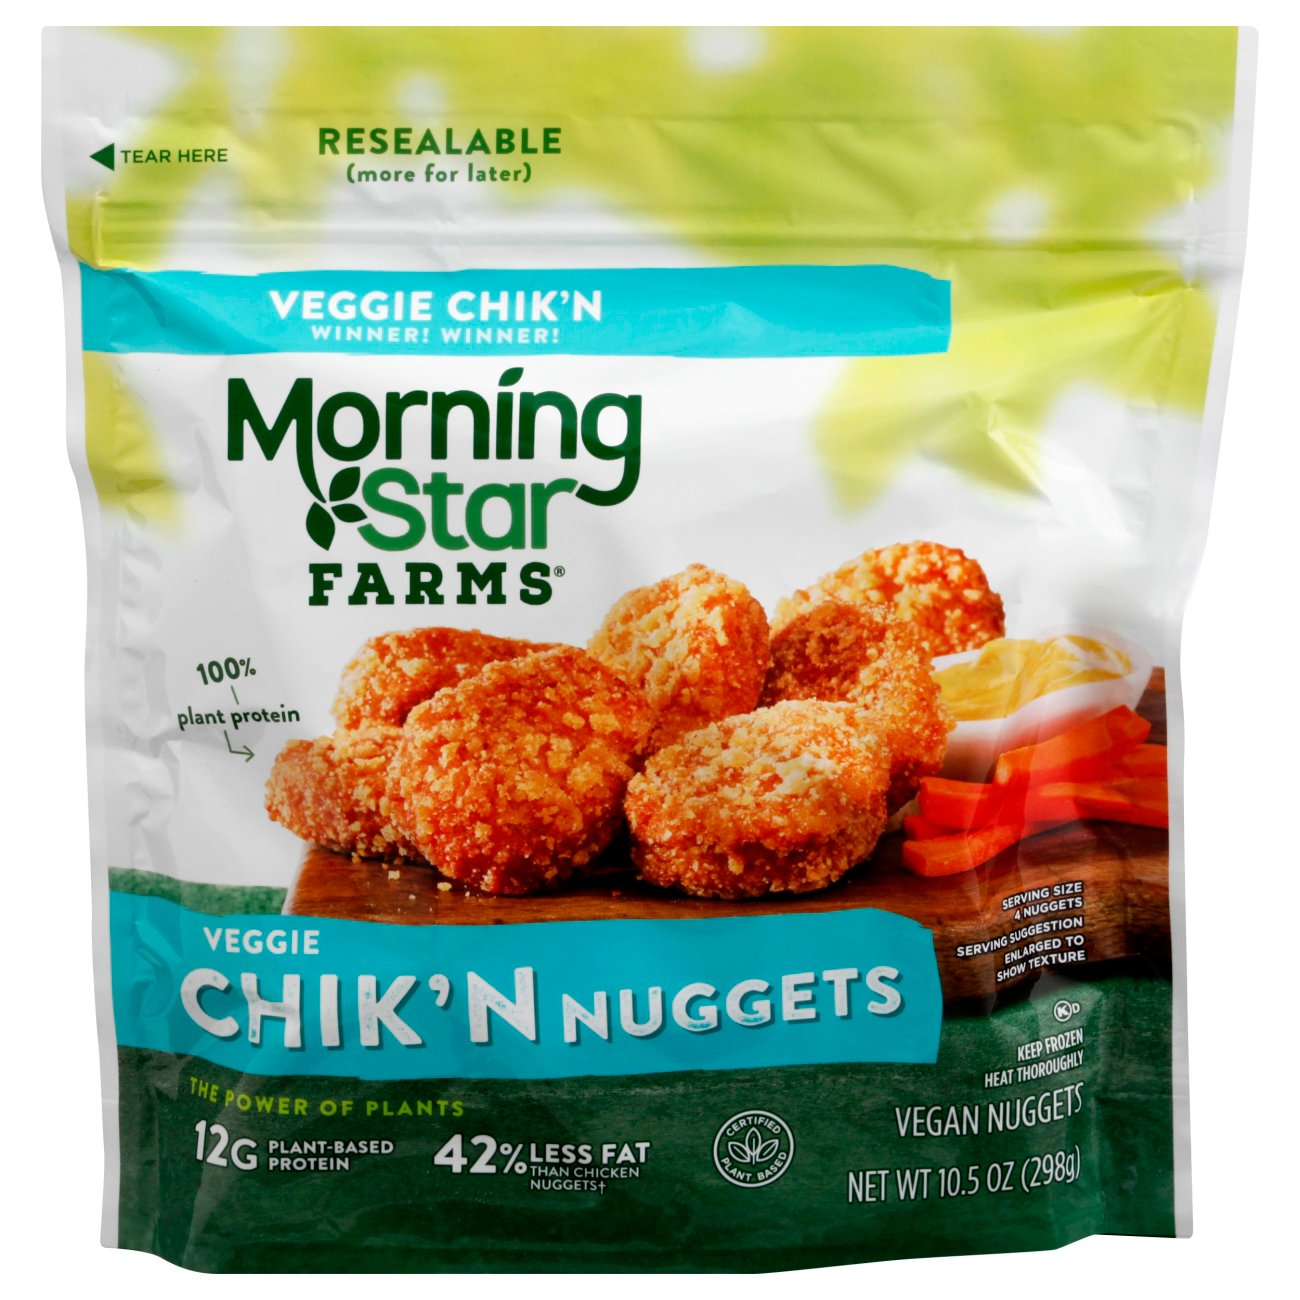 Morningstar Farms Classics Chick N Nuggets Shop Meat Alternatives At H E B